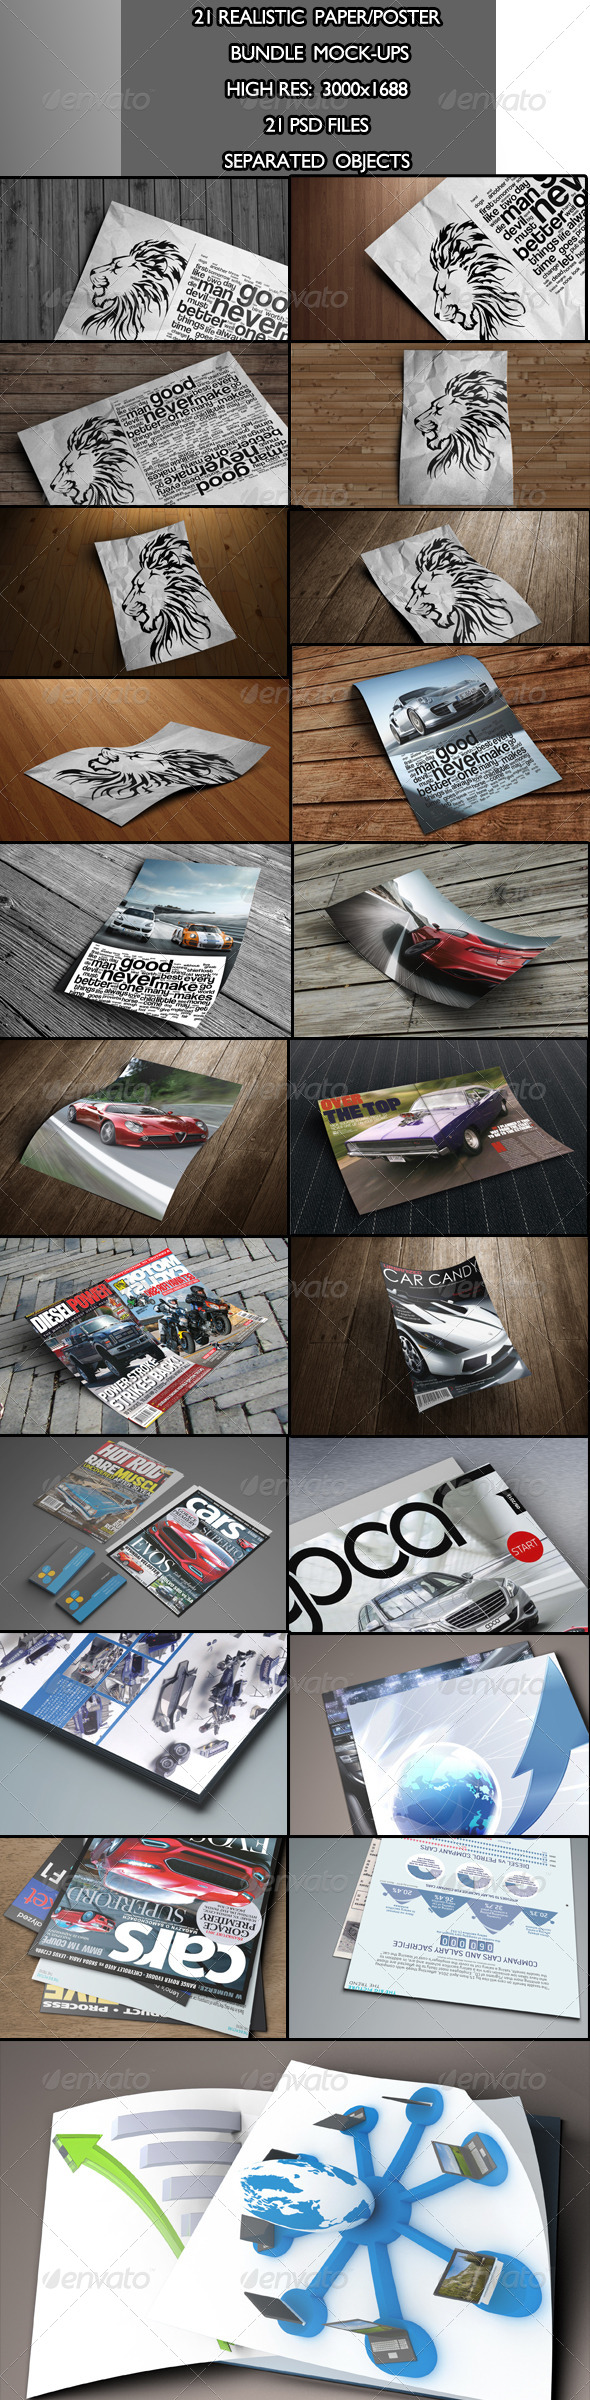 GraphicRiver Realistic Paper Poster Bundle Mock-Ups 6579649